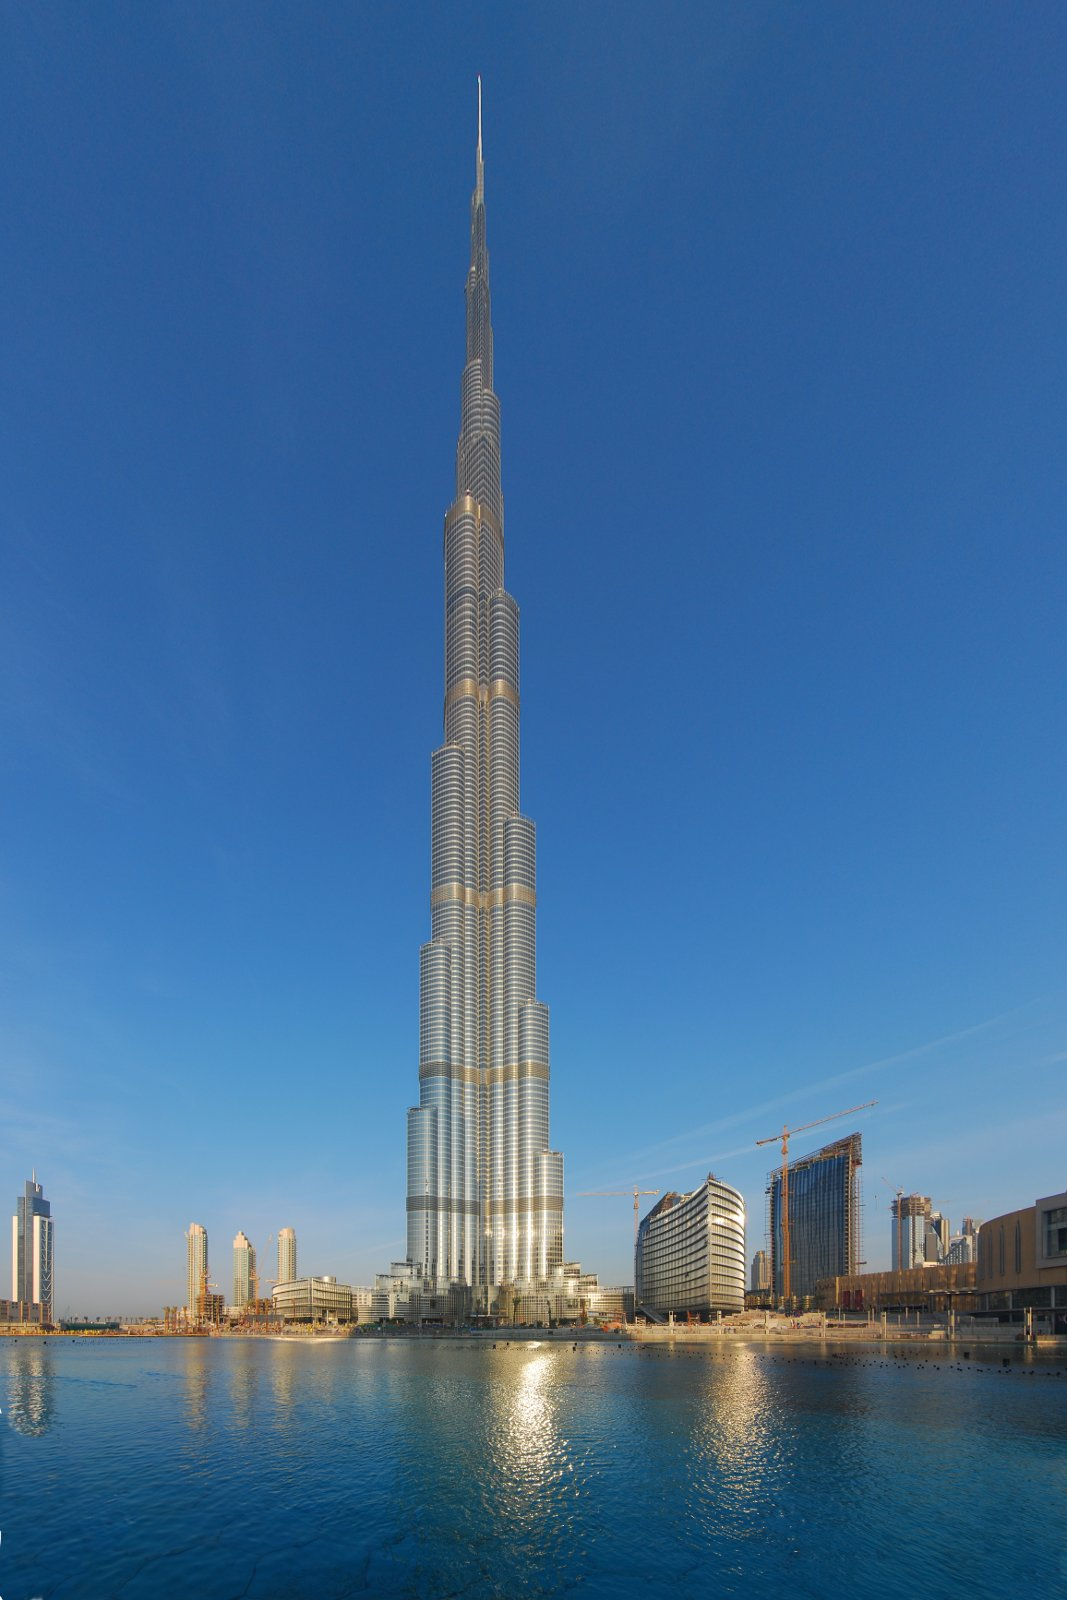 Burj Khalifa, the tallest building in Dubai.